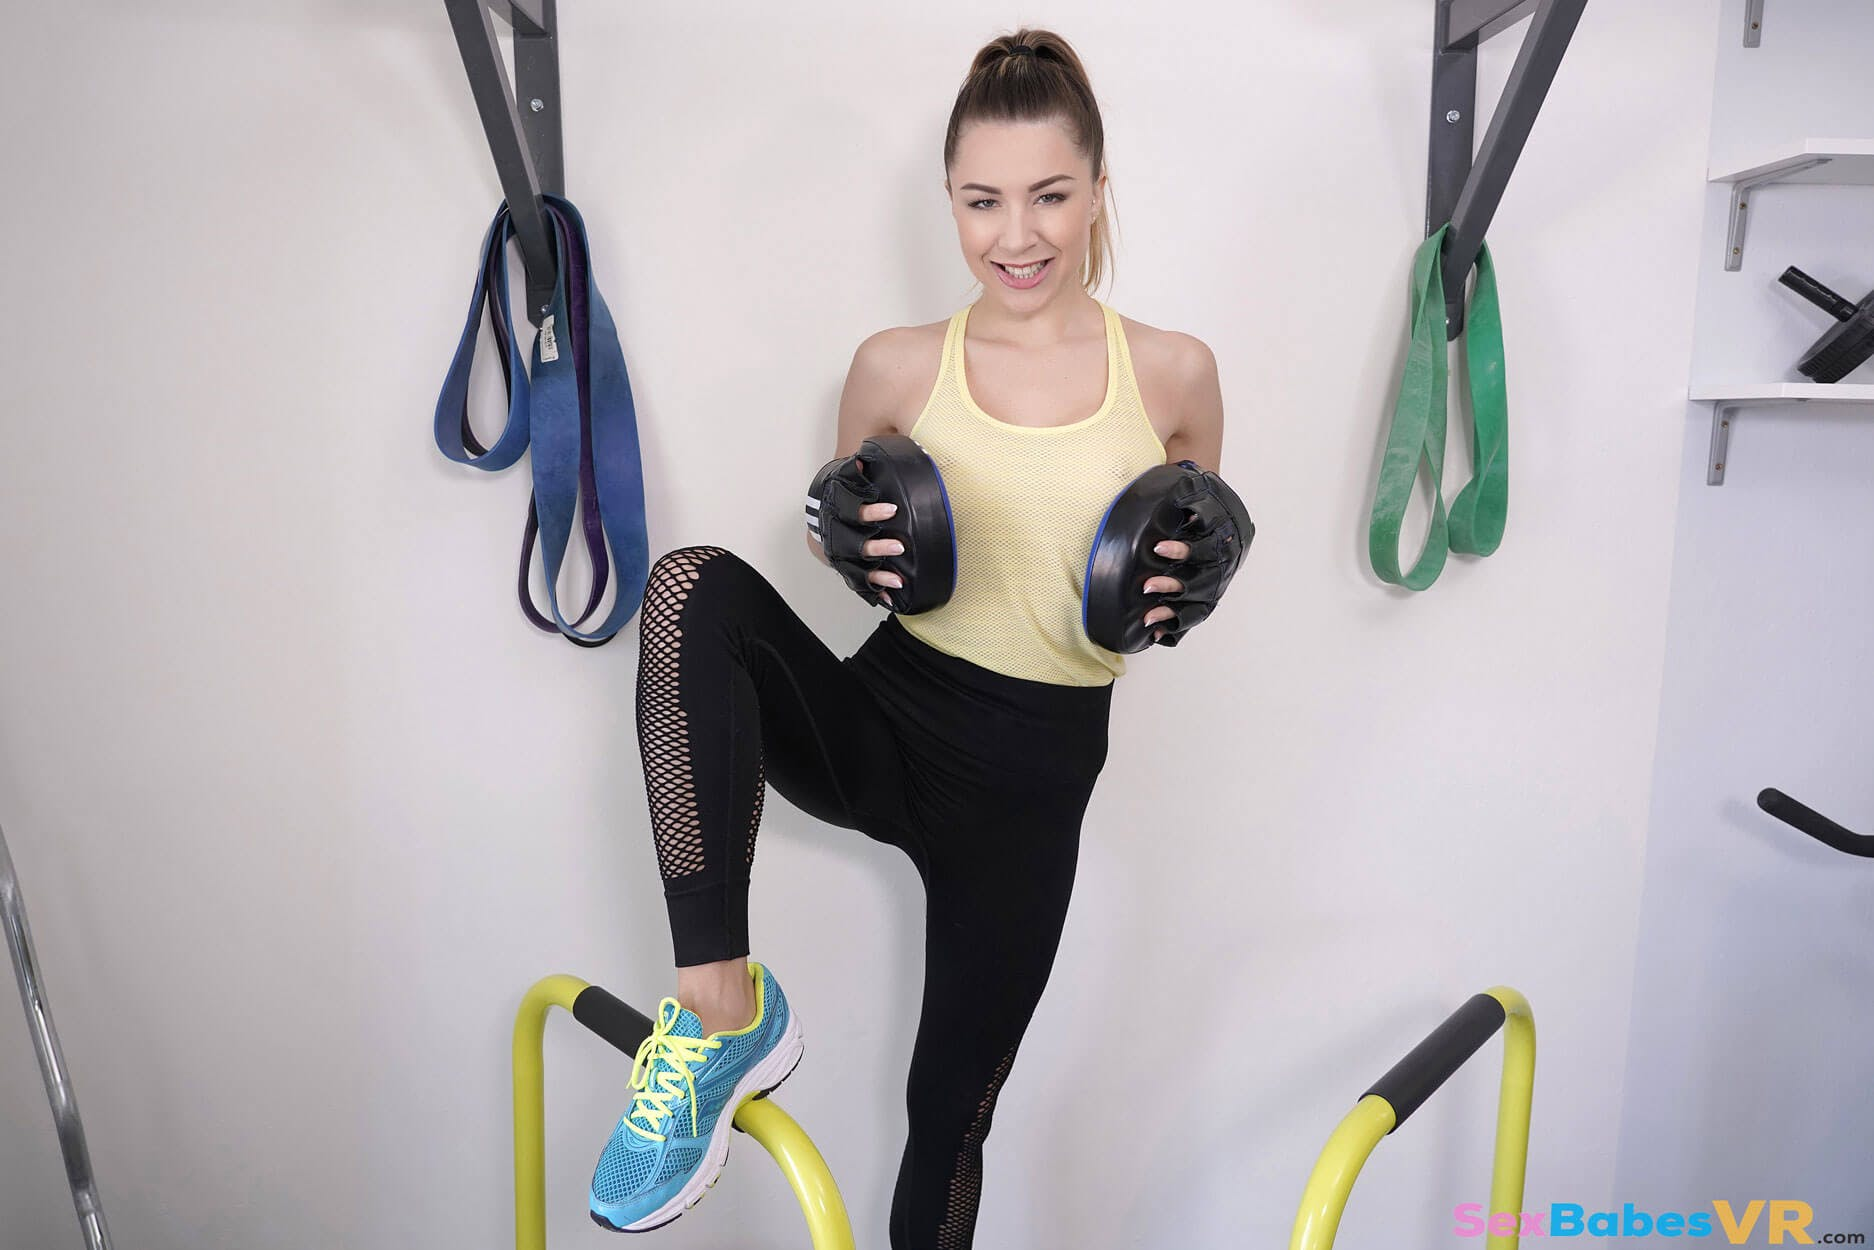 VR roleplaying porn featuring a woman in workout gear